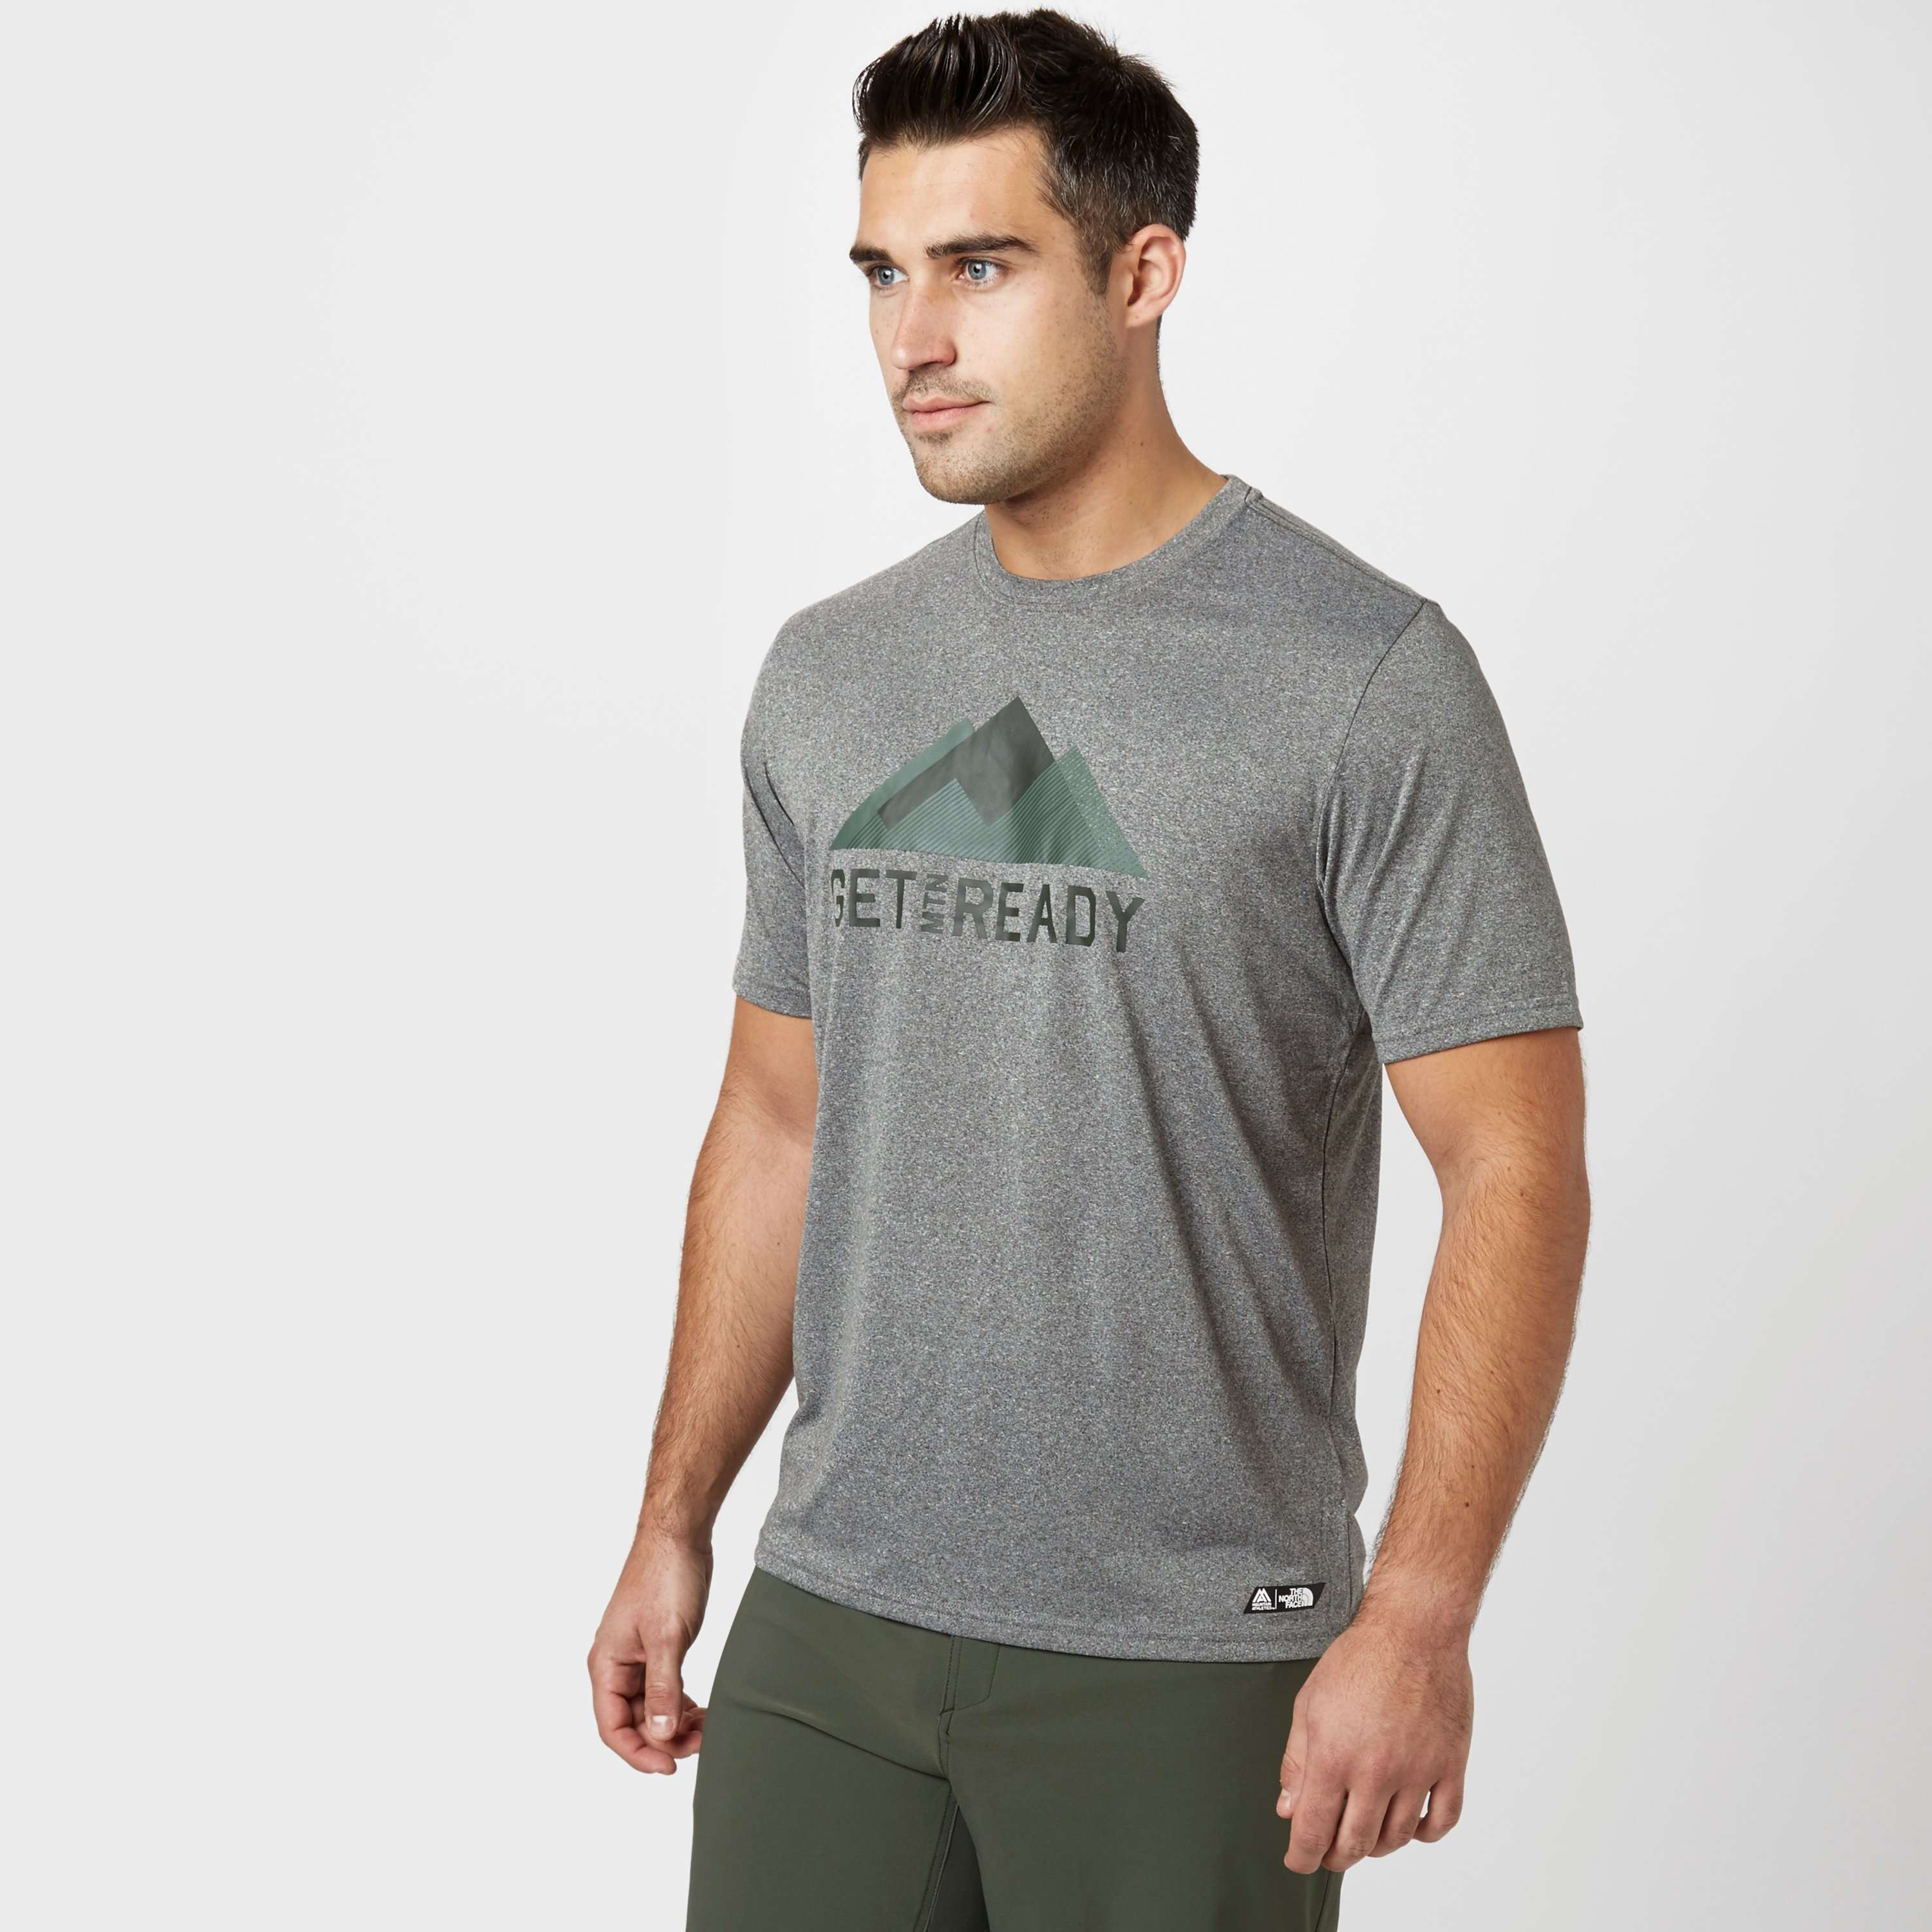 THE NORTH FACE Men's Mountain Athletics 'Get Mountain Ready' T-Shirt